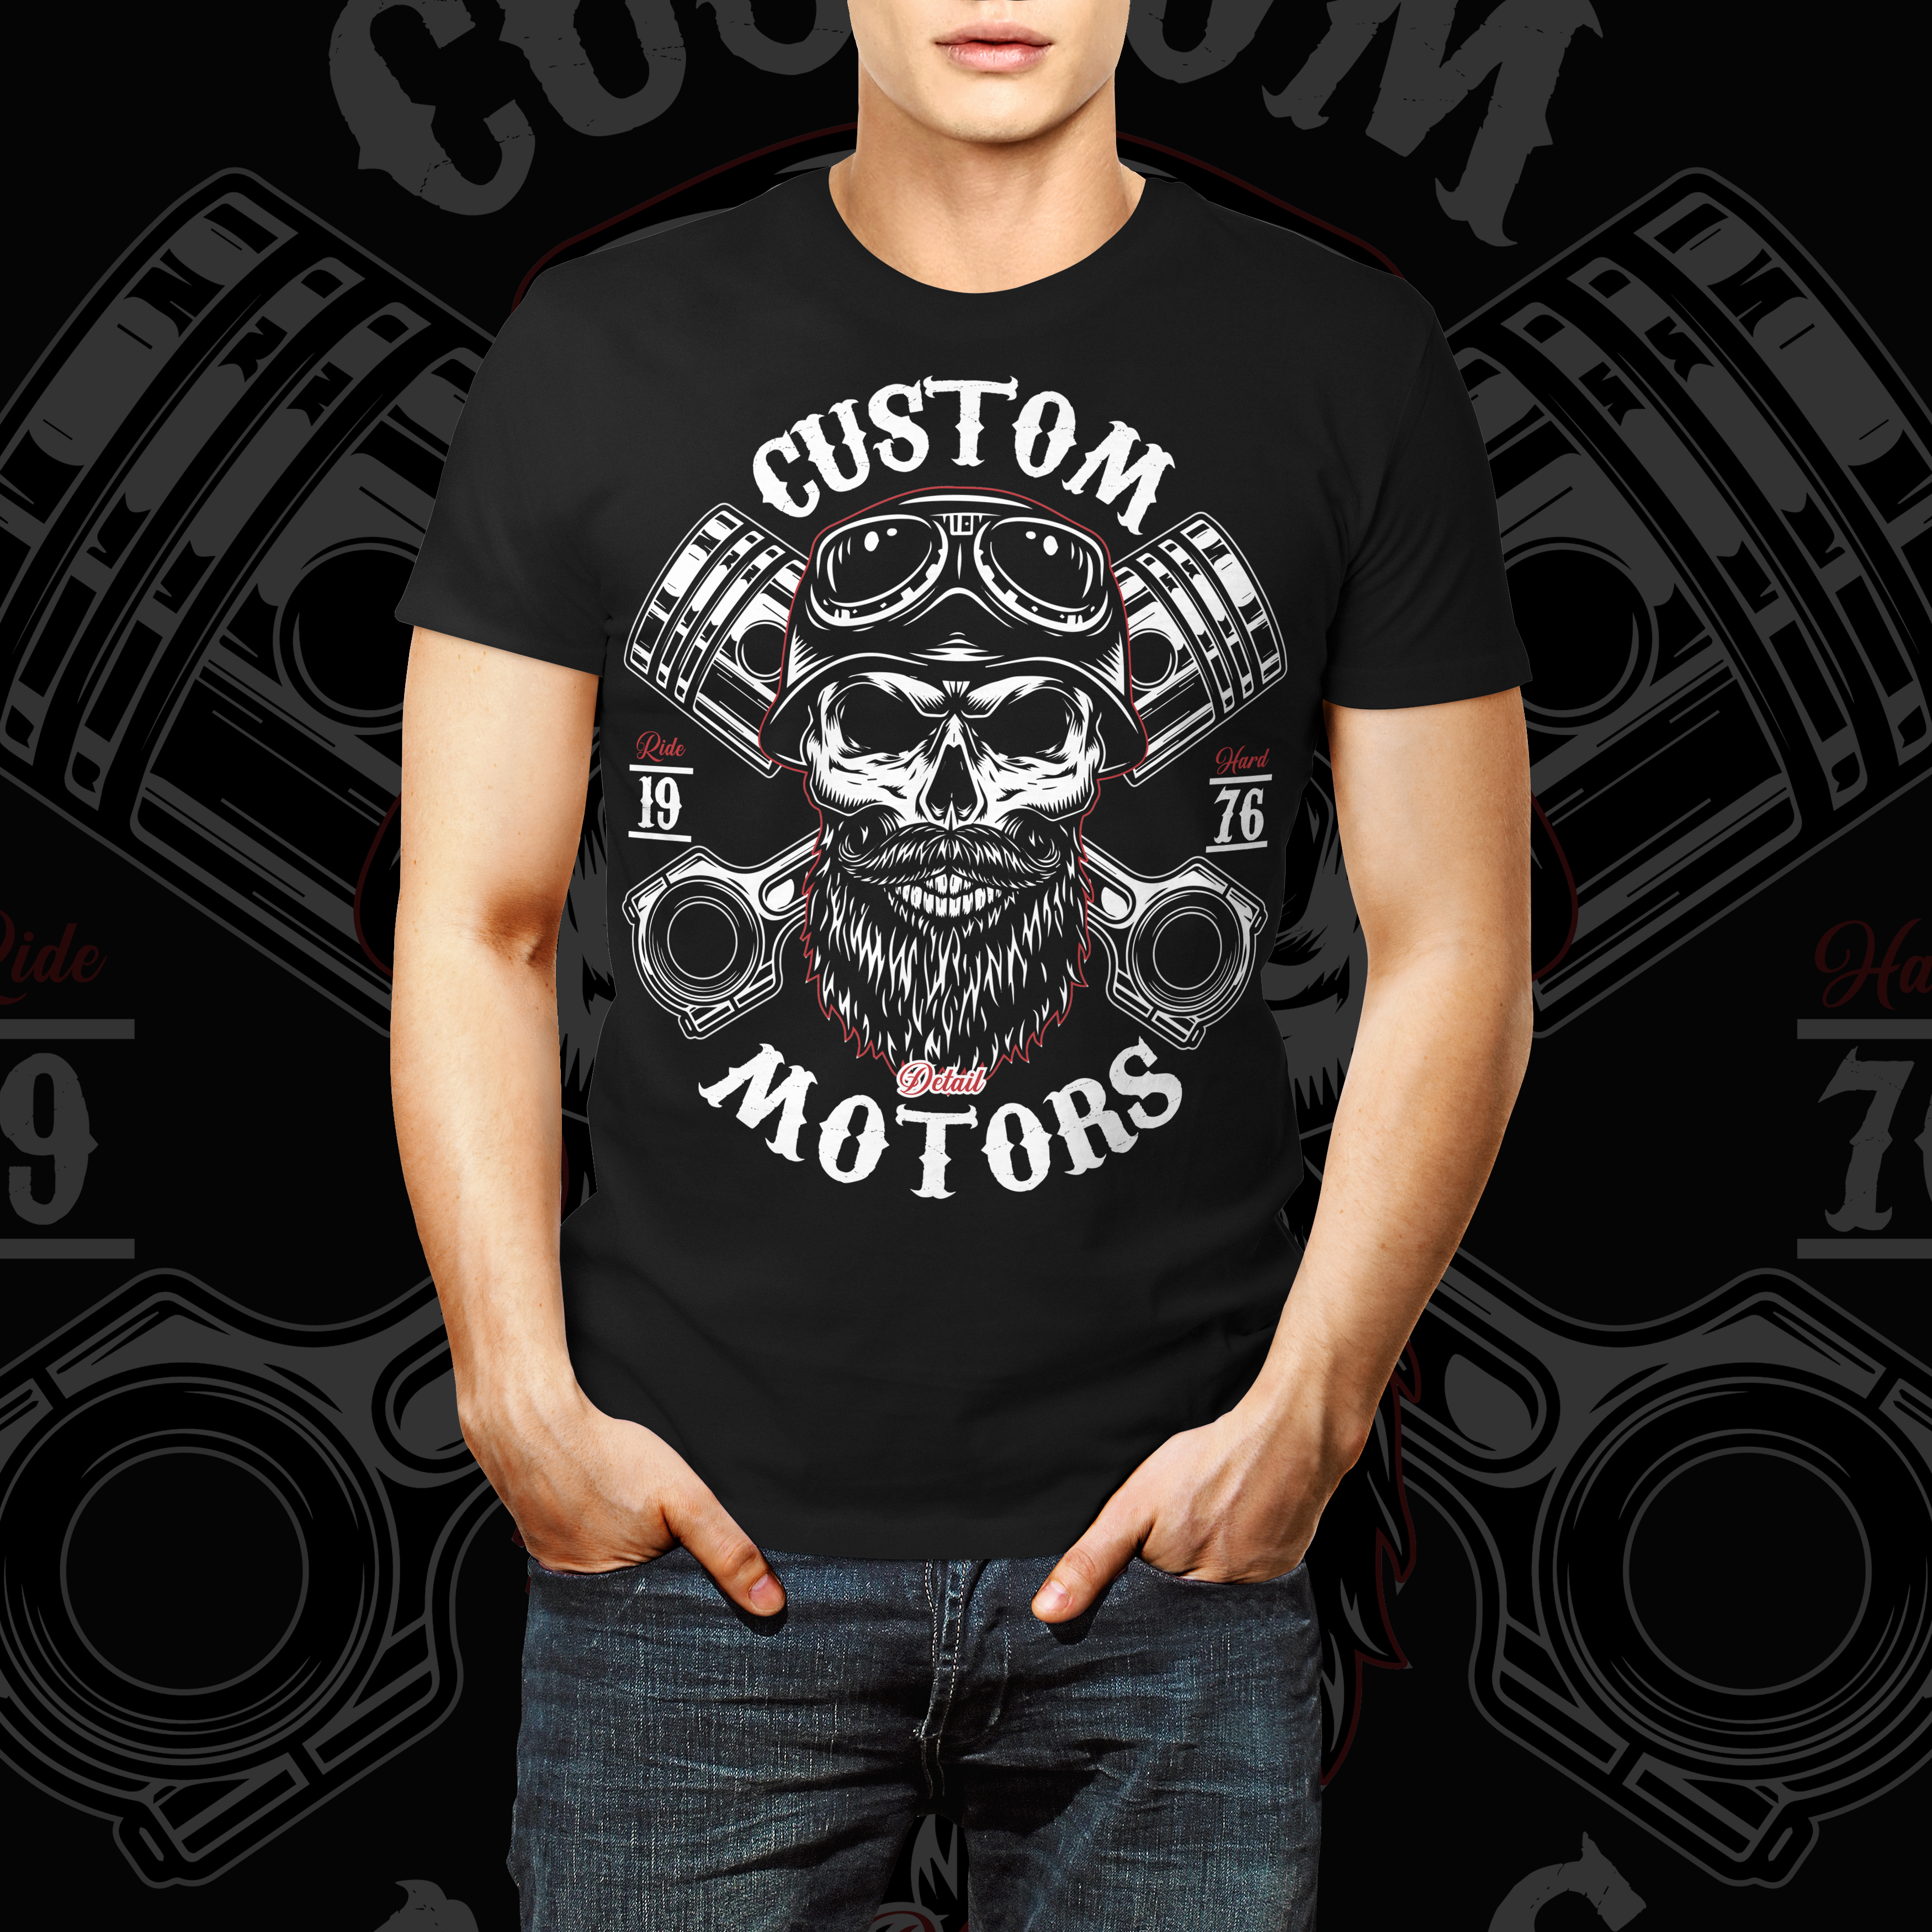 I will design modern T shirt within 6 hours